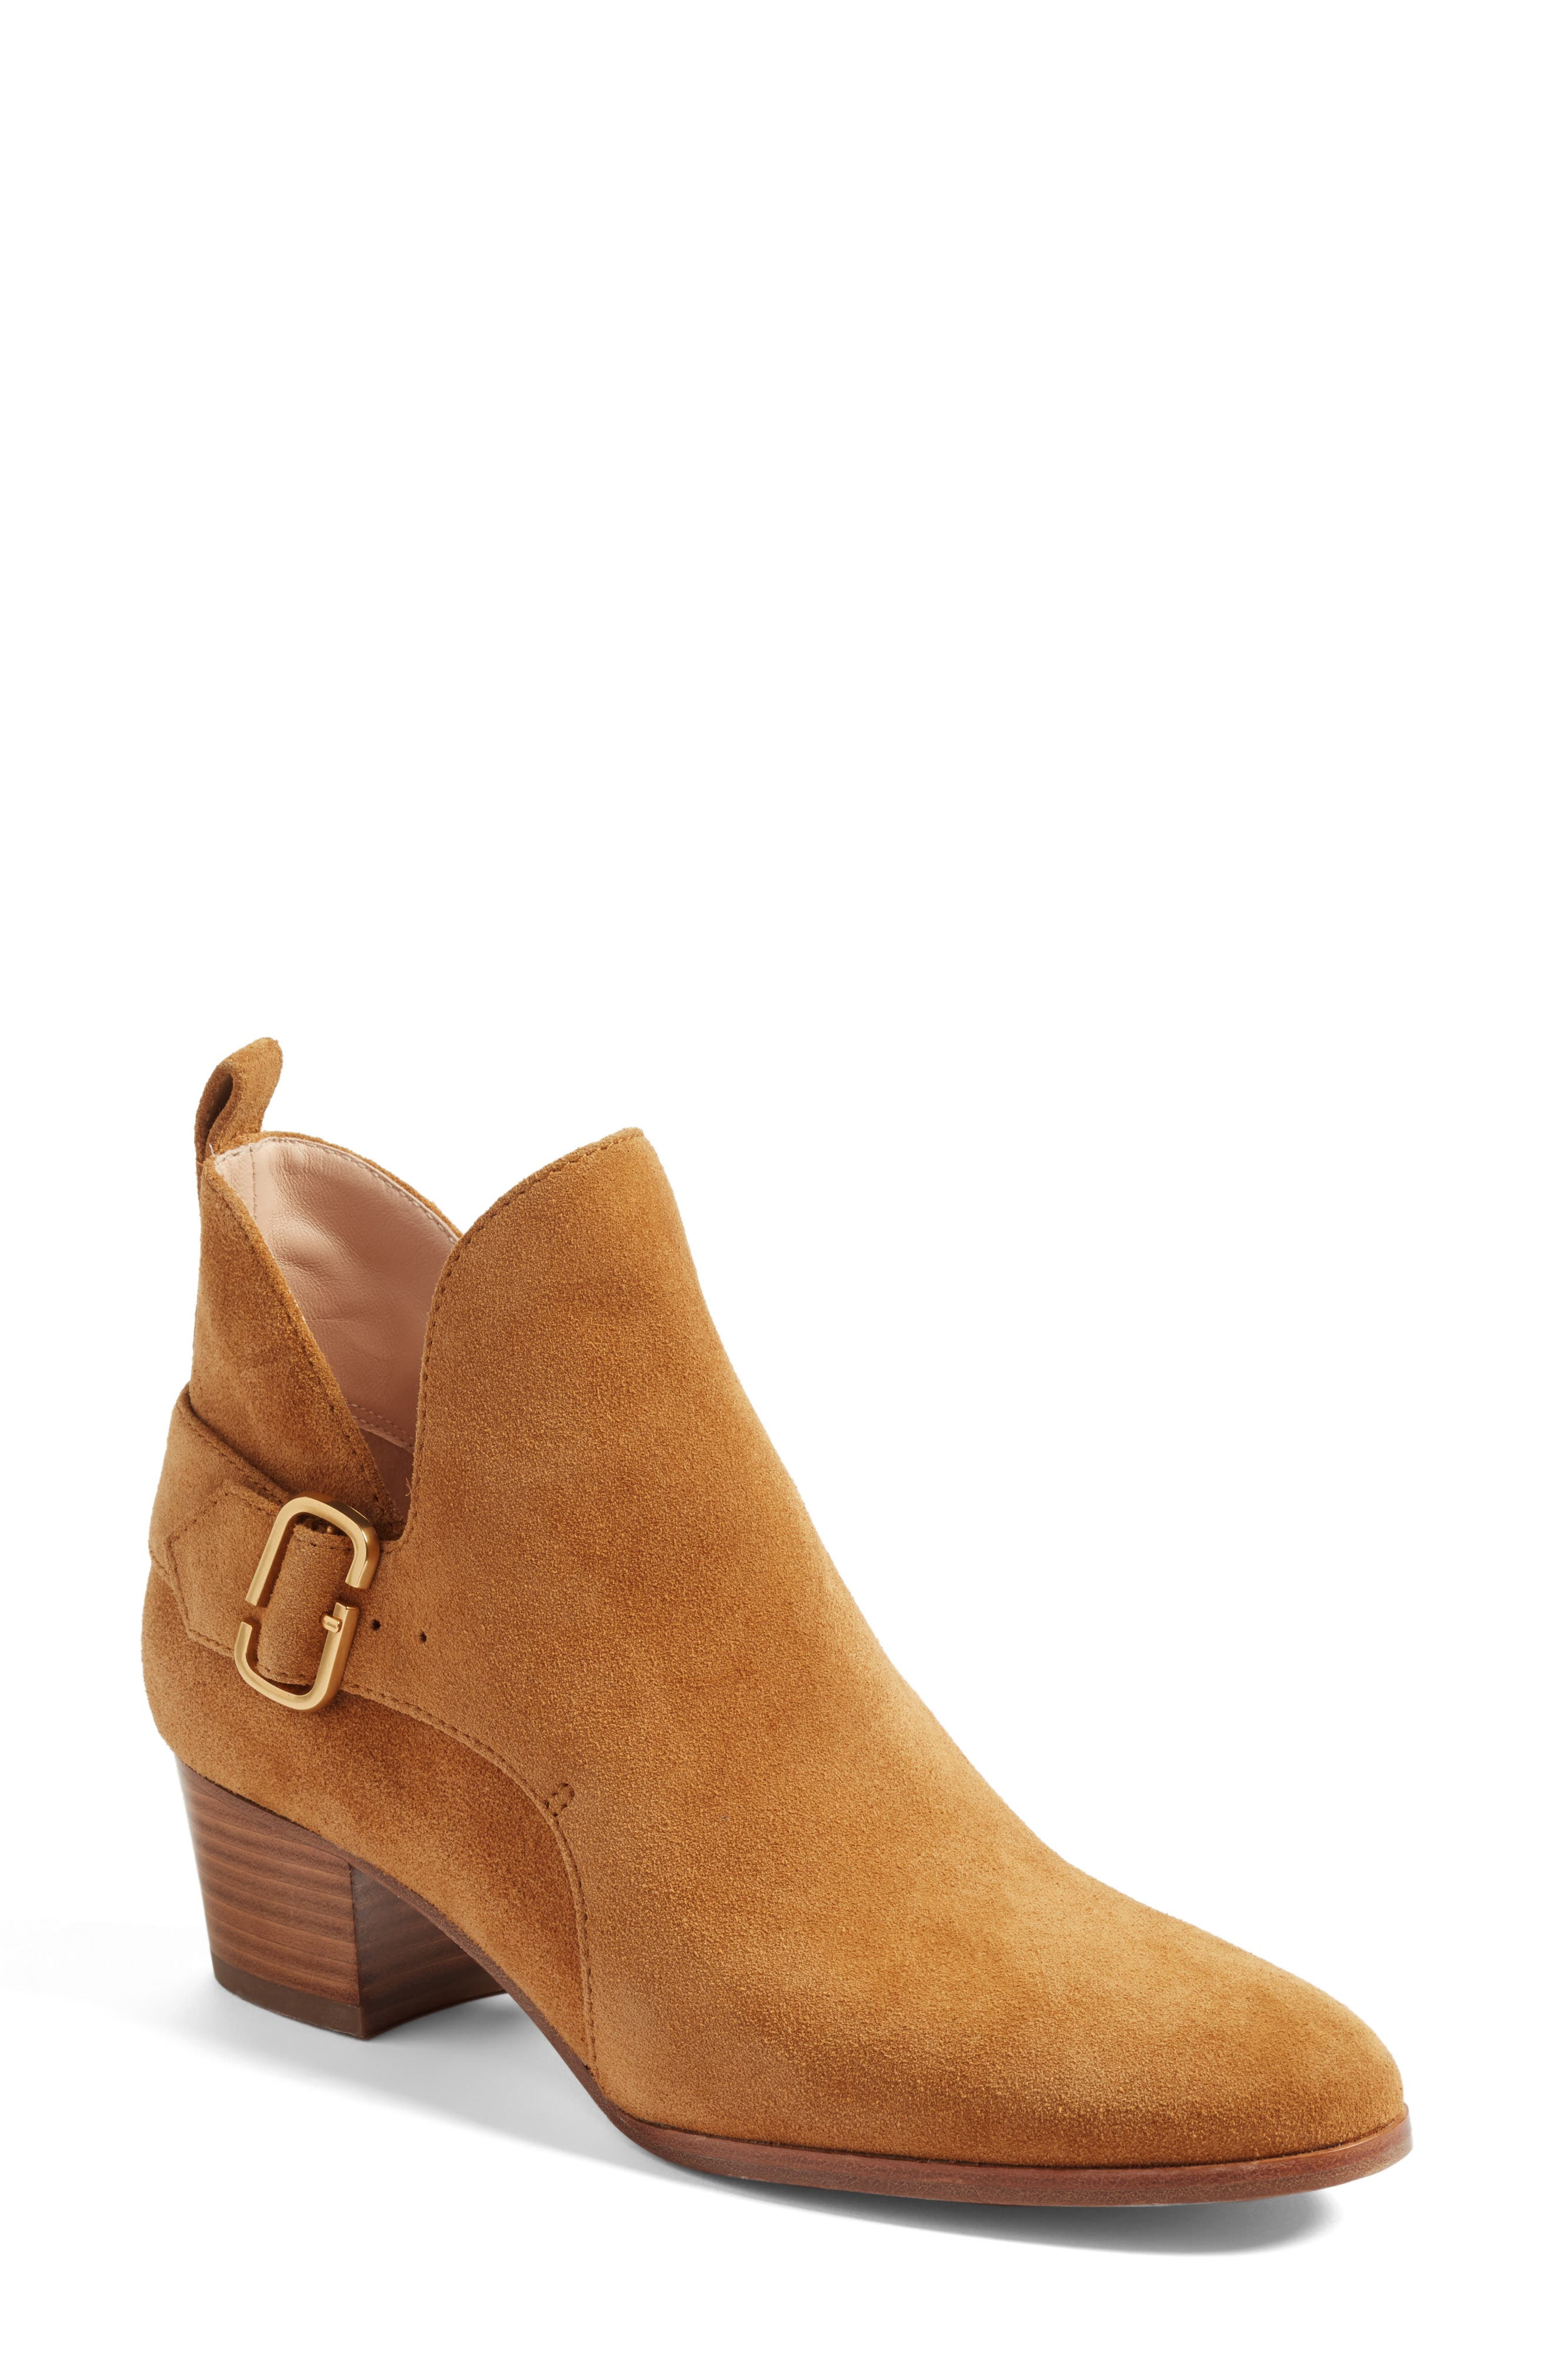 Alternate Image 1 Selected - Marc Jacobs Ginger Interlock Bootie (Women)